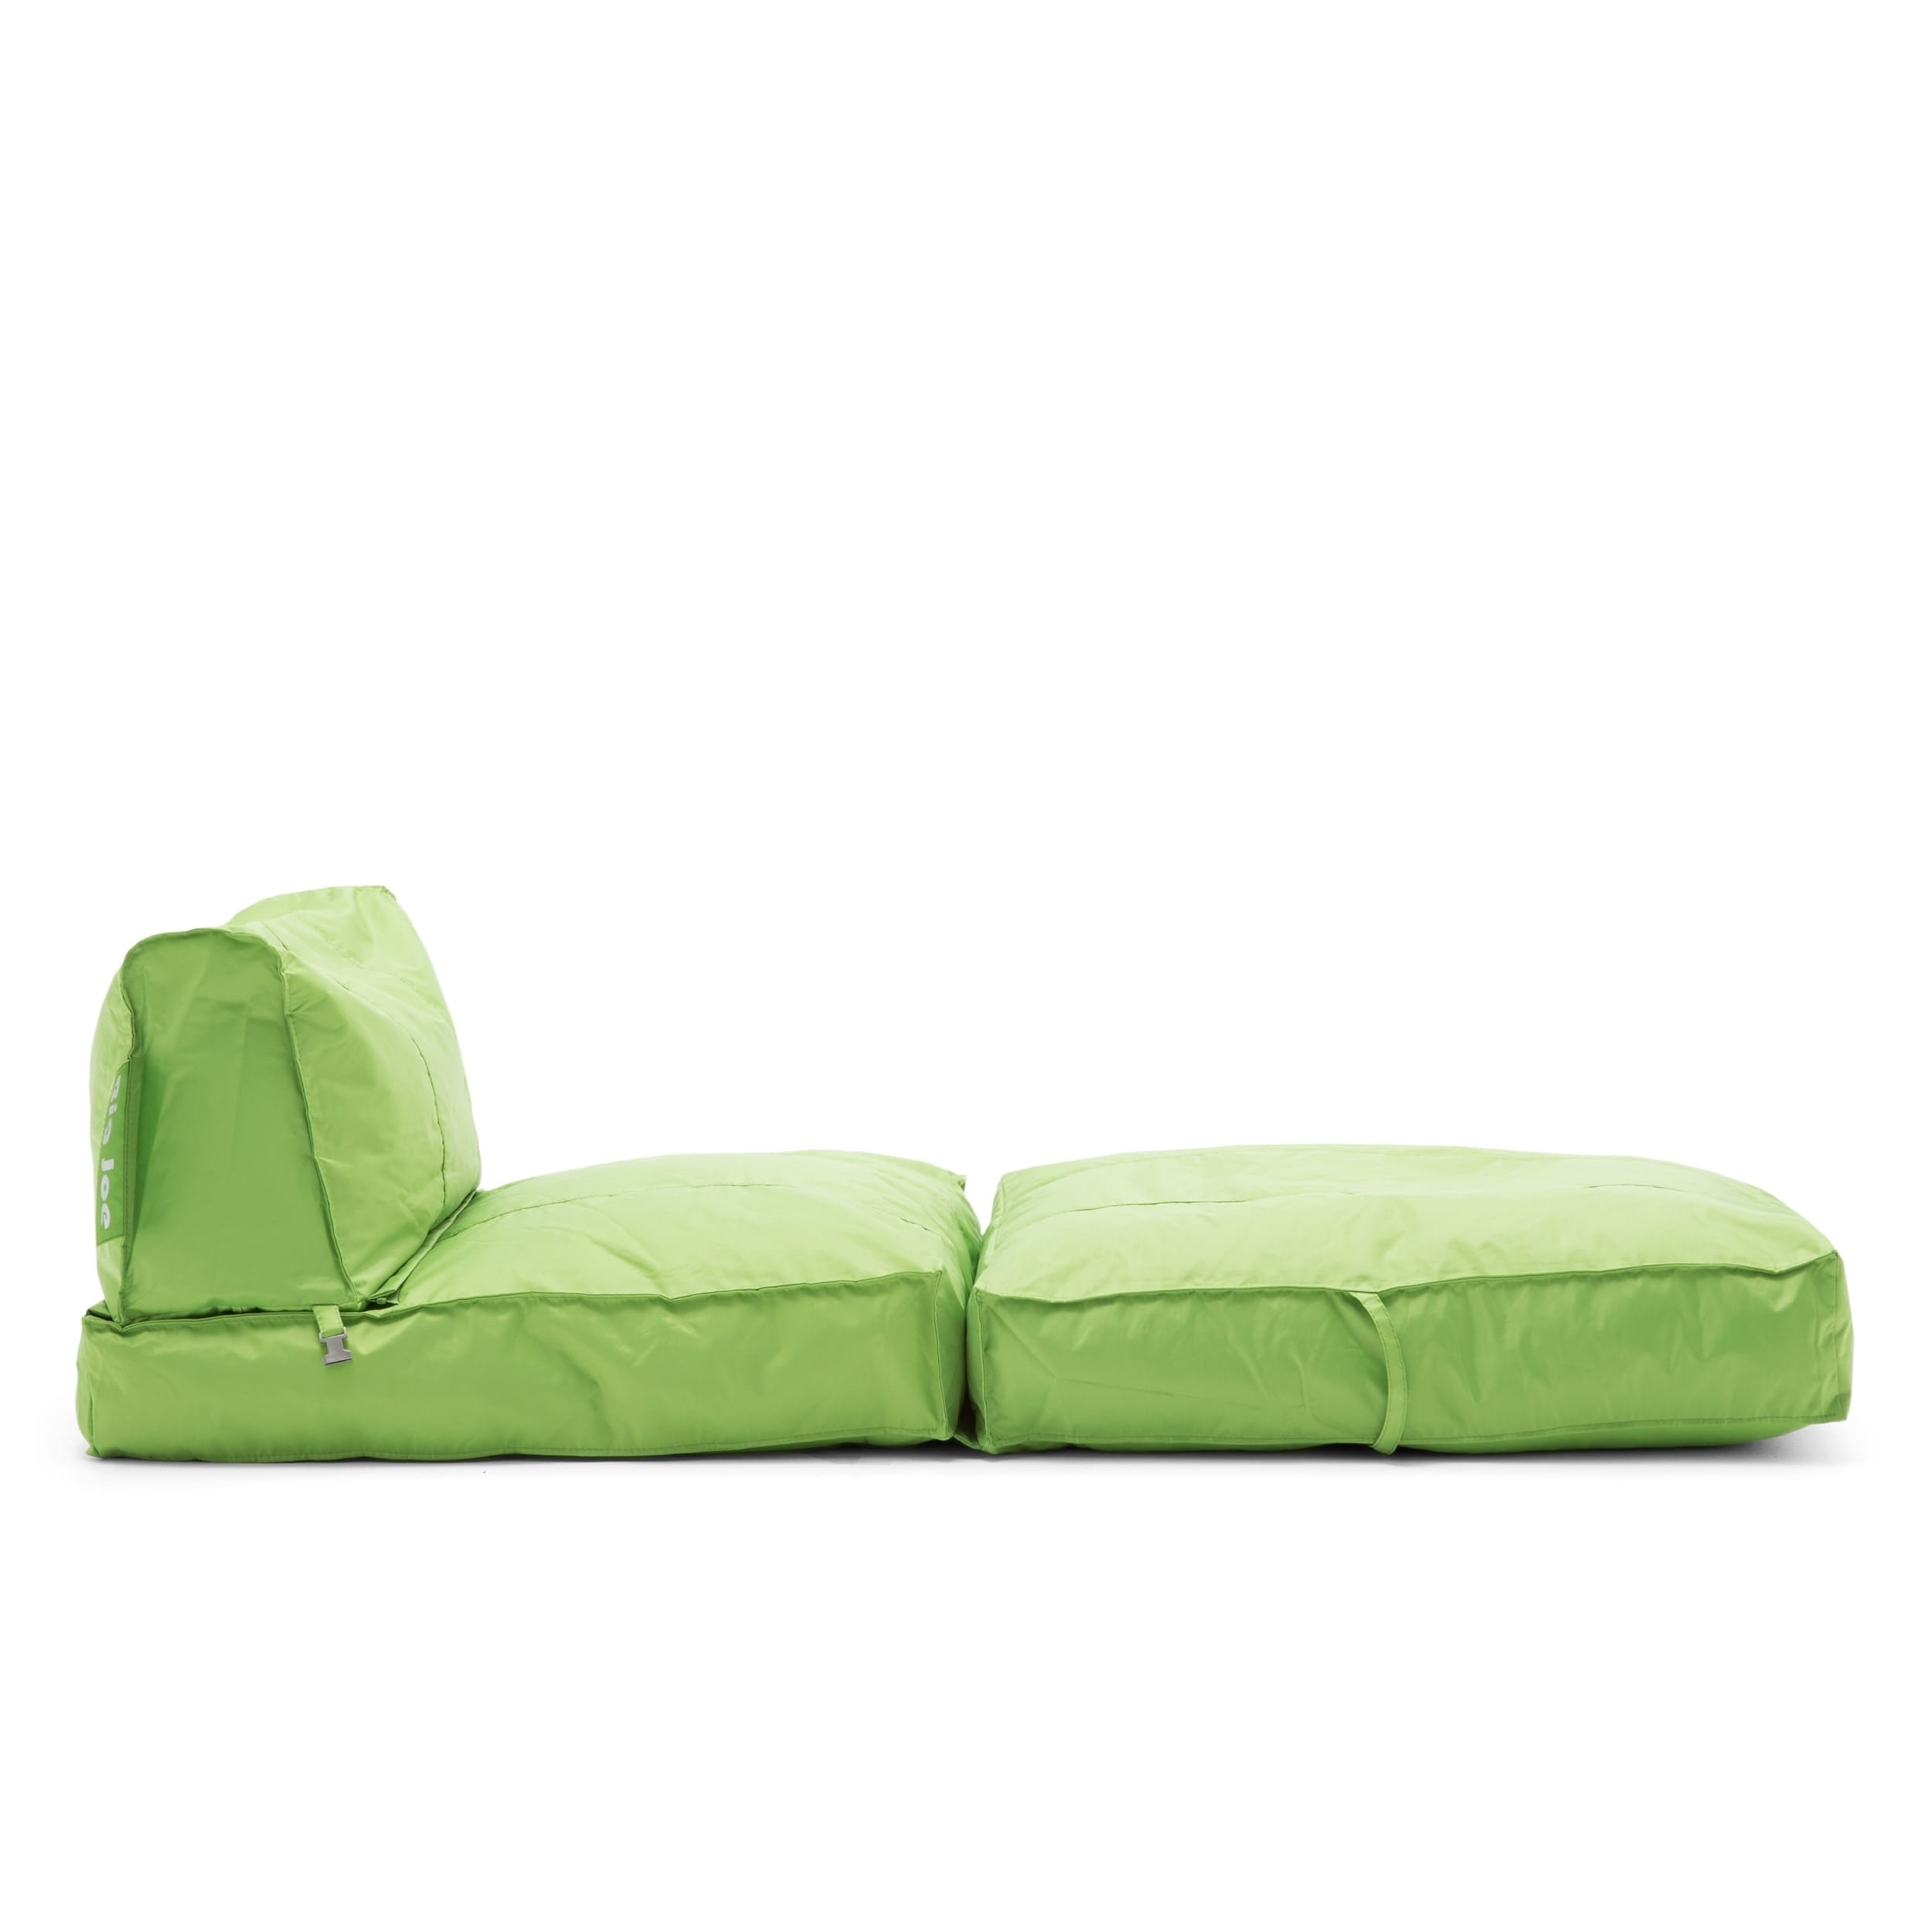 Beau Shop Big Joe Flip Lounger Bean Bag Chair   Free Shipping Today    Overstock.com   19759192